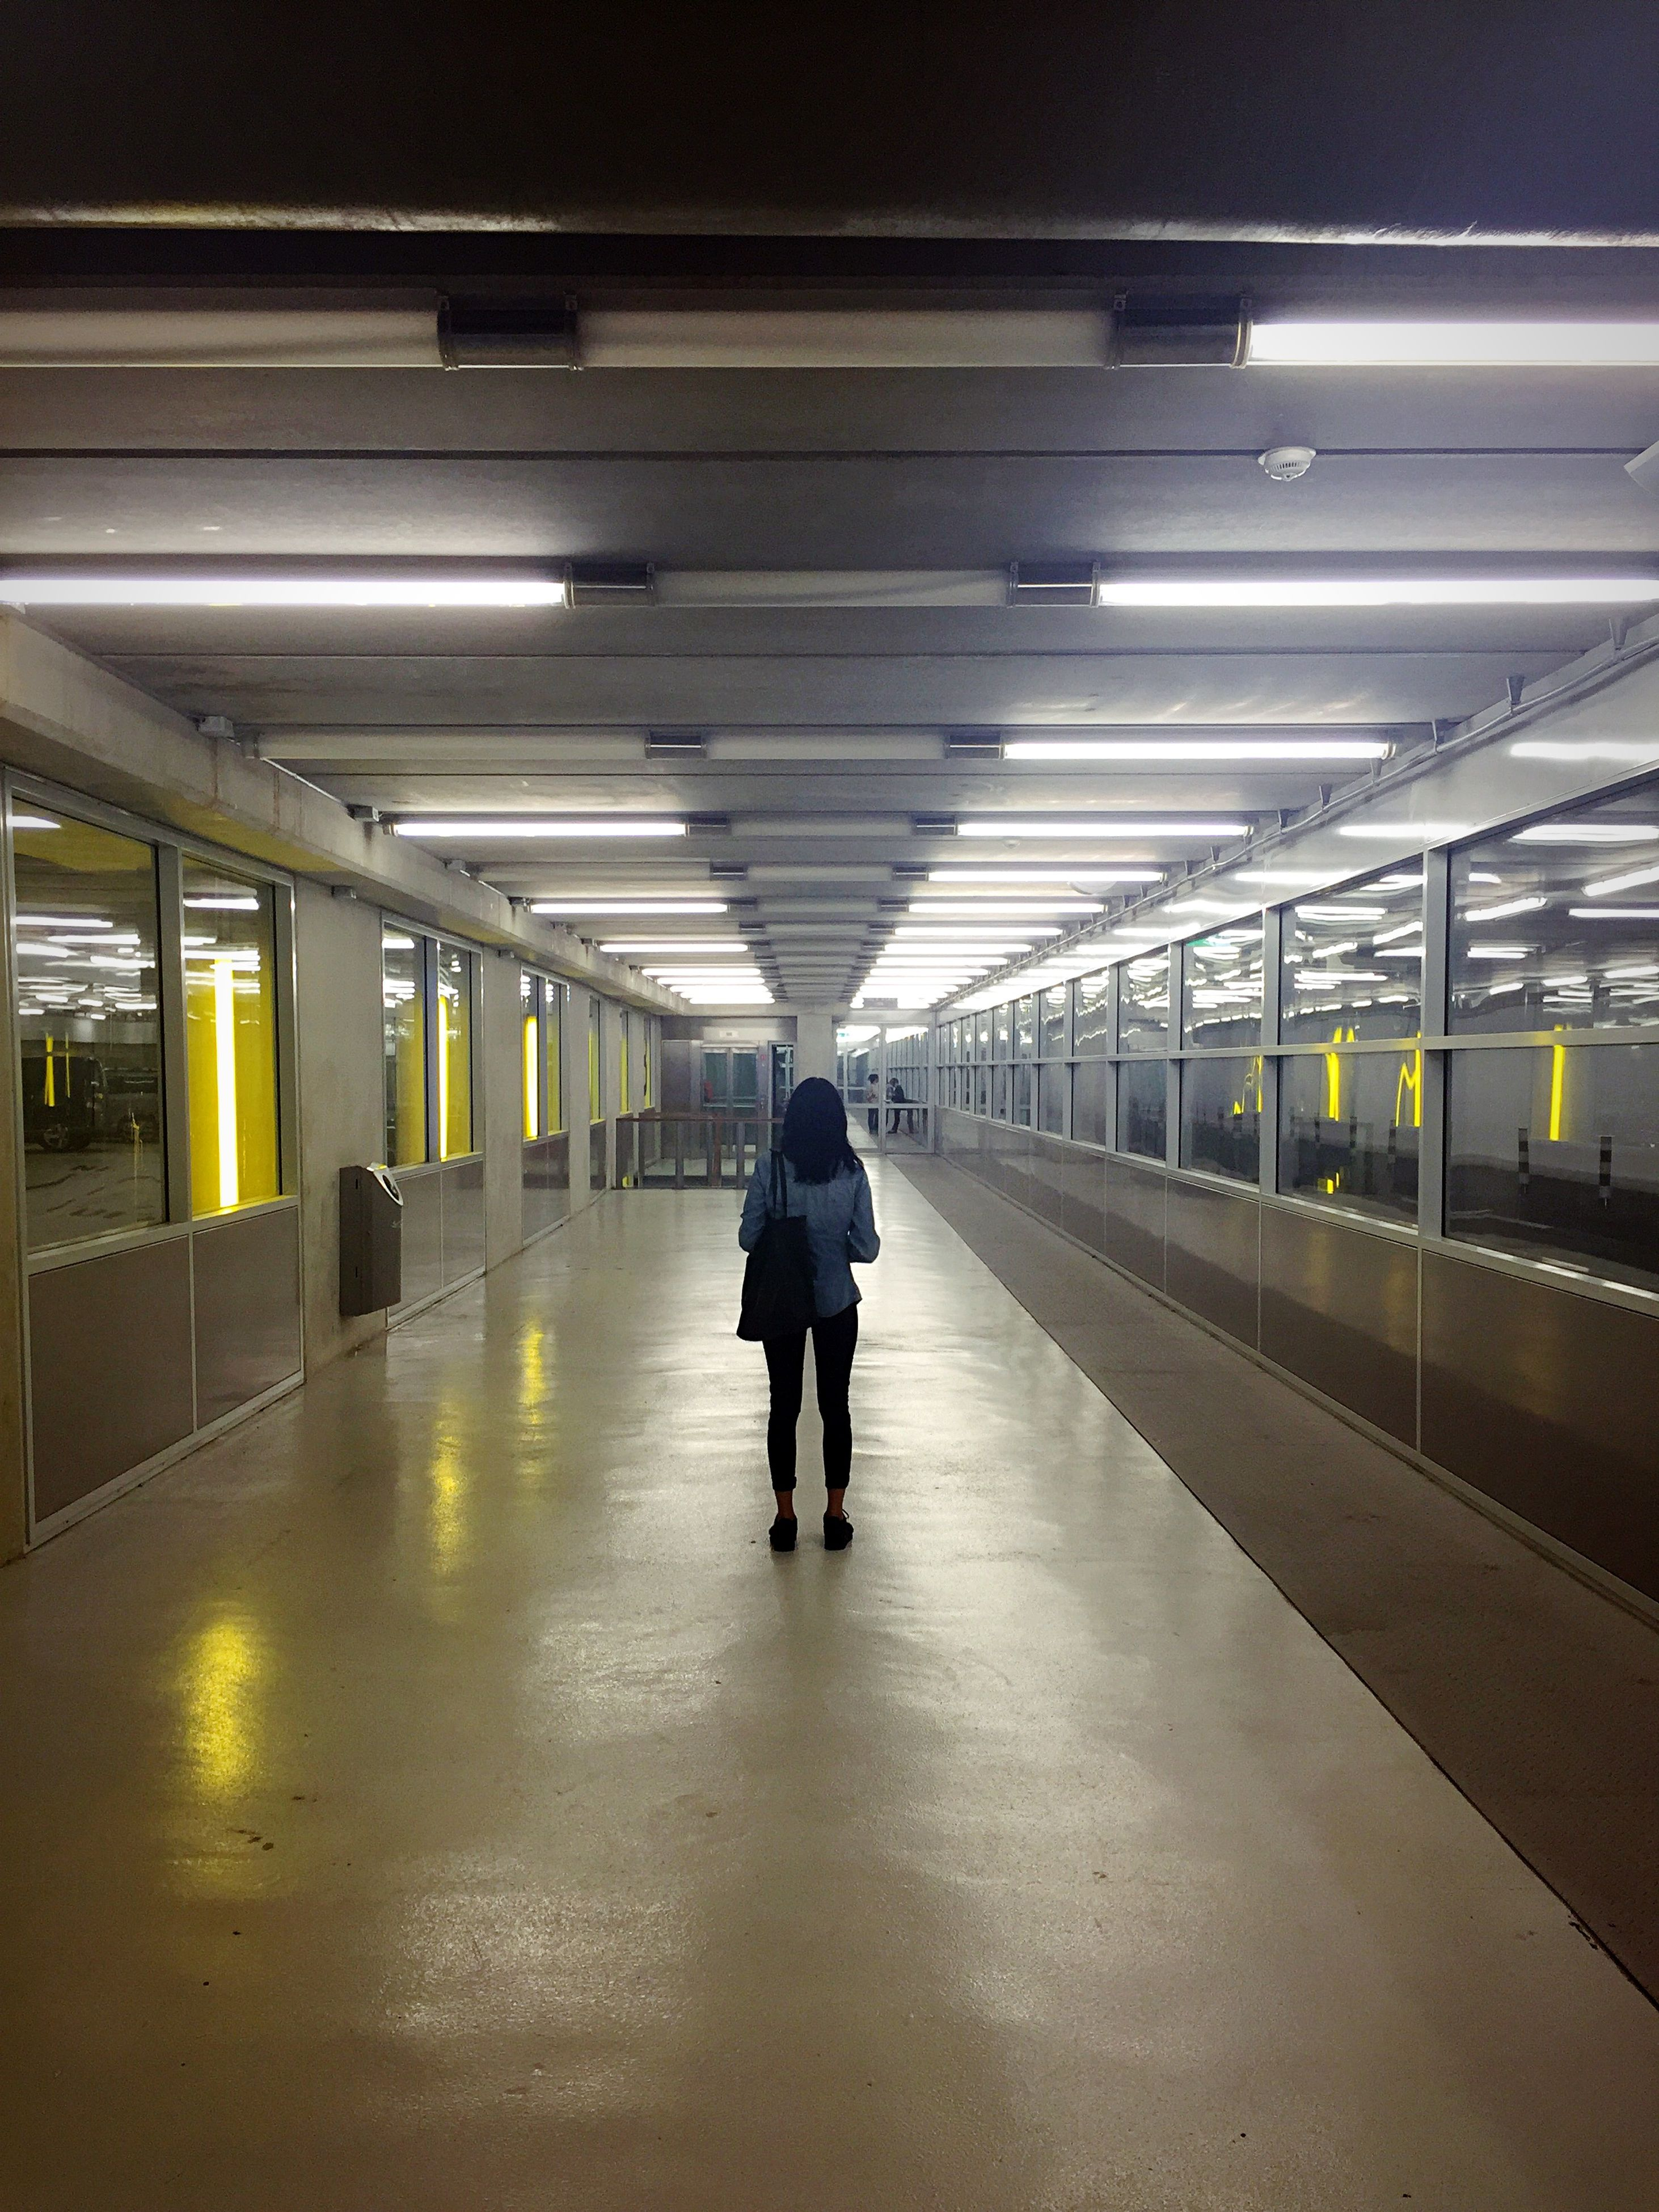 indoors, full length, walking, ceiling, illuminated, rear view, lifestyles, men, architecture, built structure, transportation, the way forward, railroad station platform, tunnel, railroad station, standing, subway, person